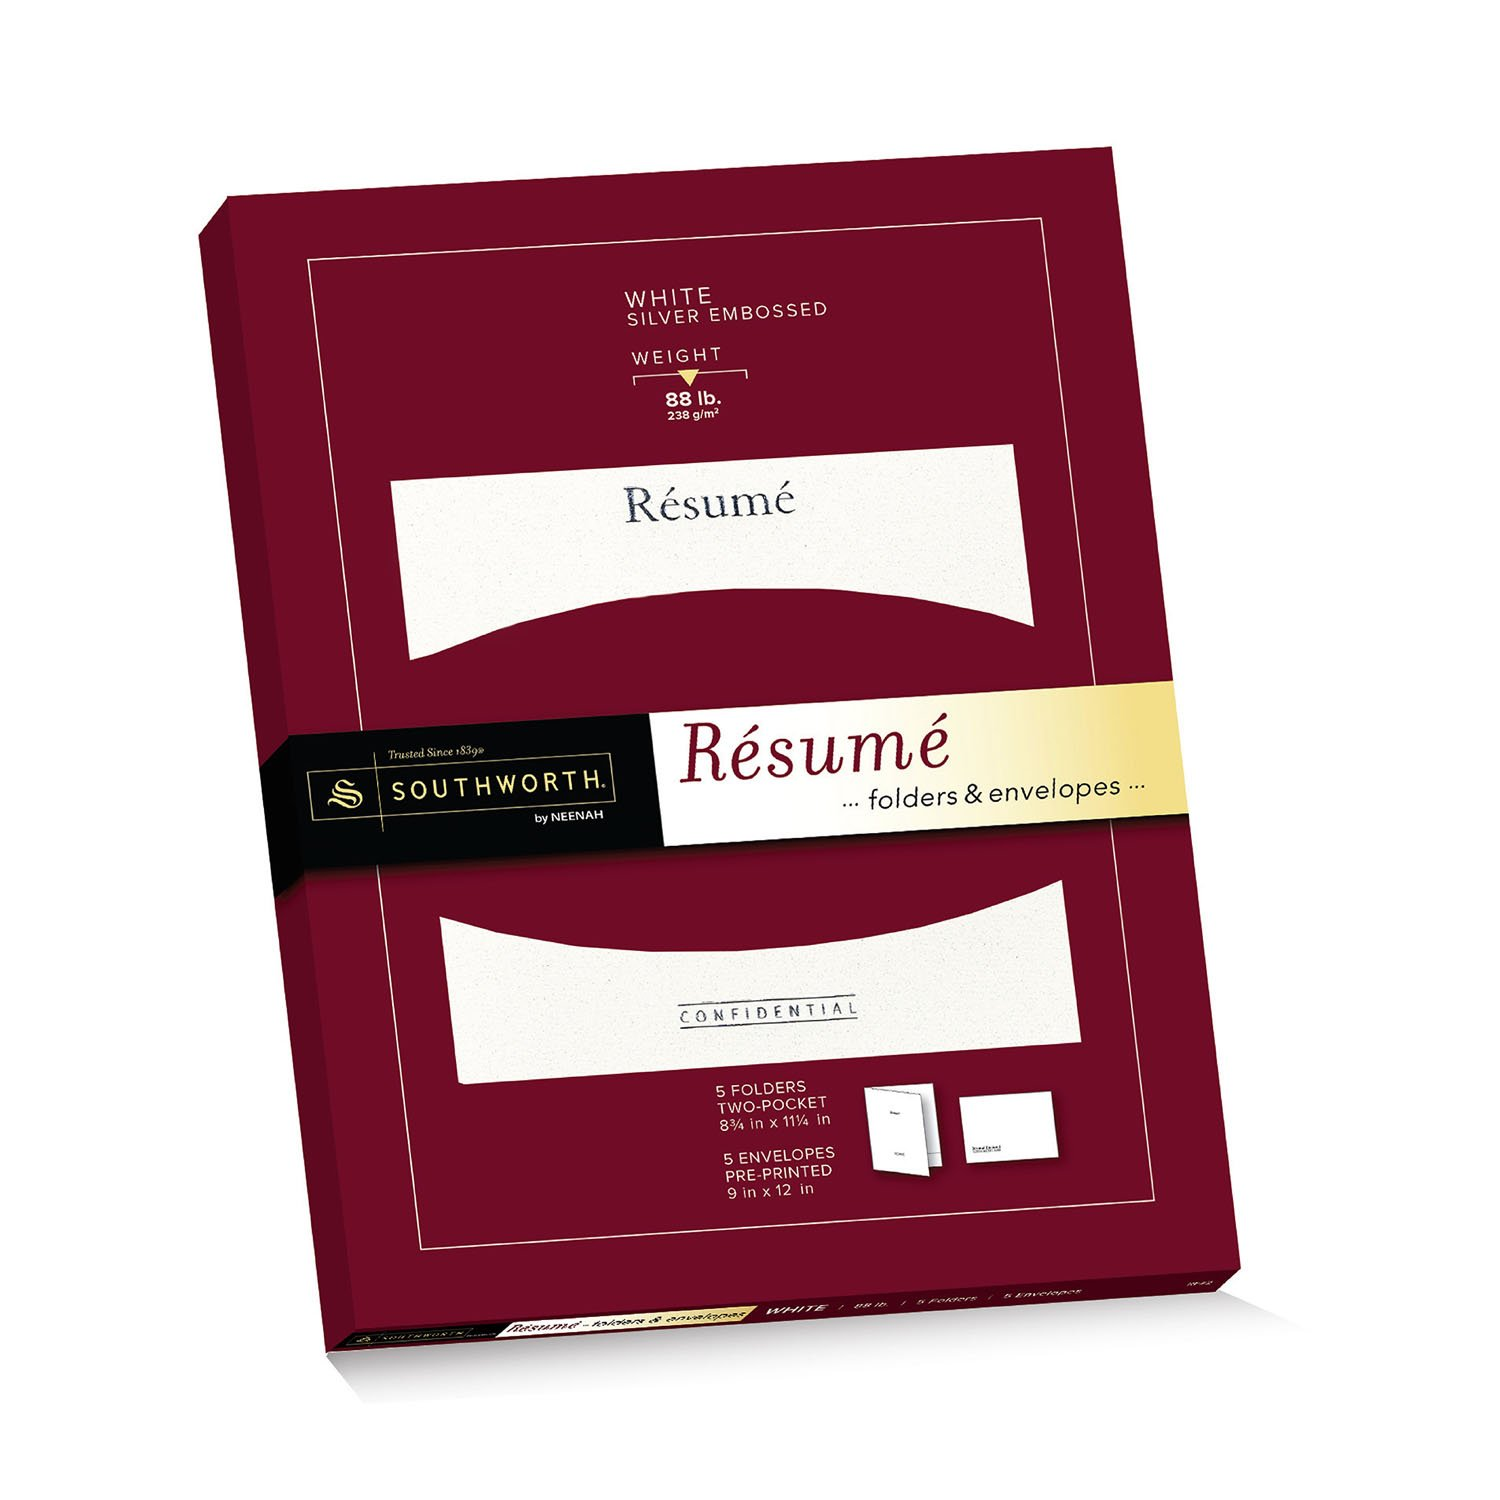 resume folder Cerescoffeeco